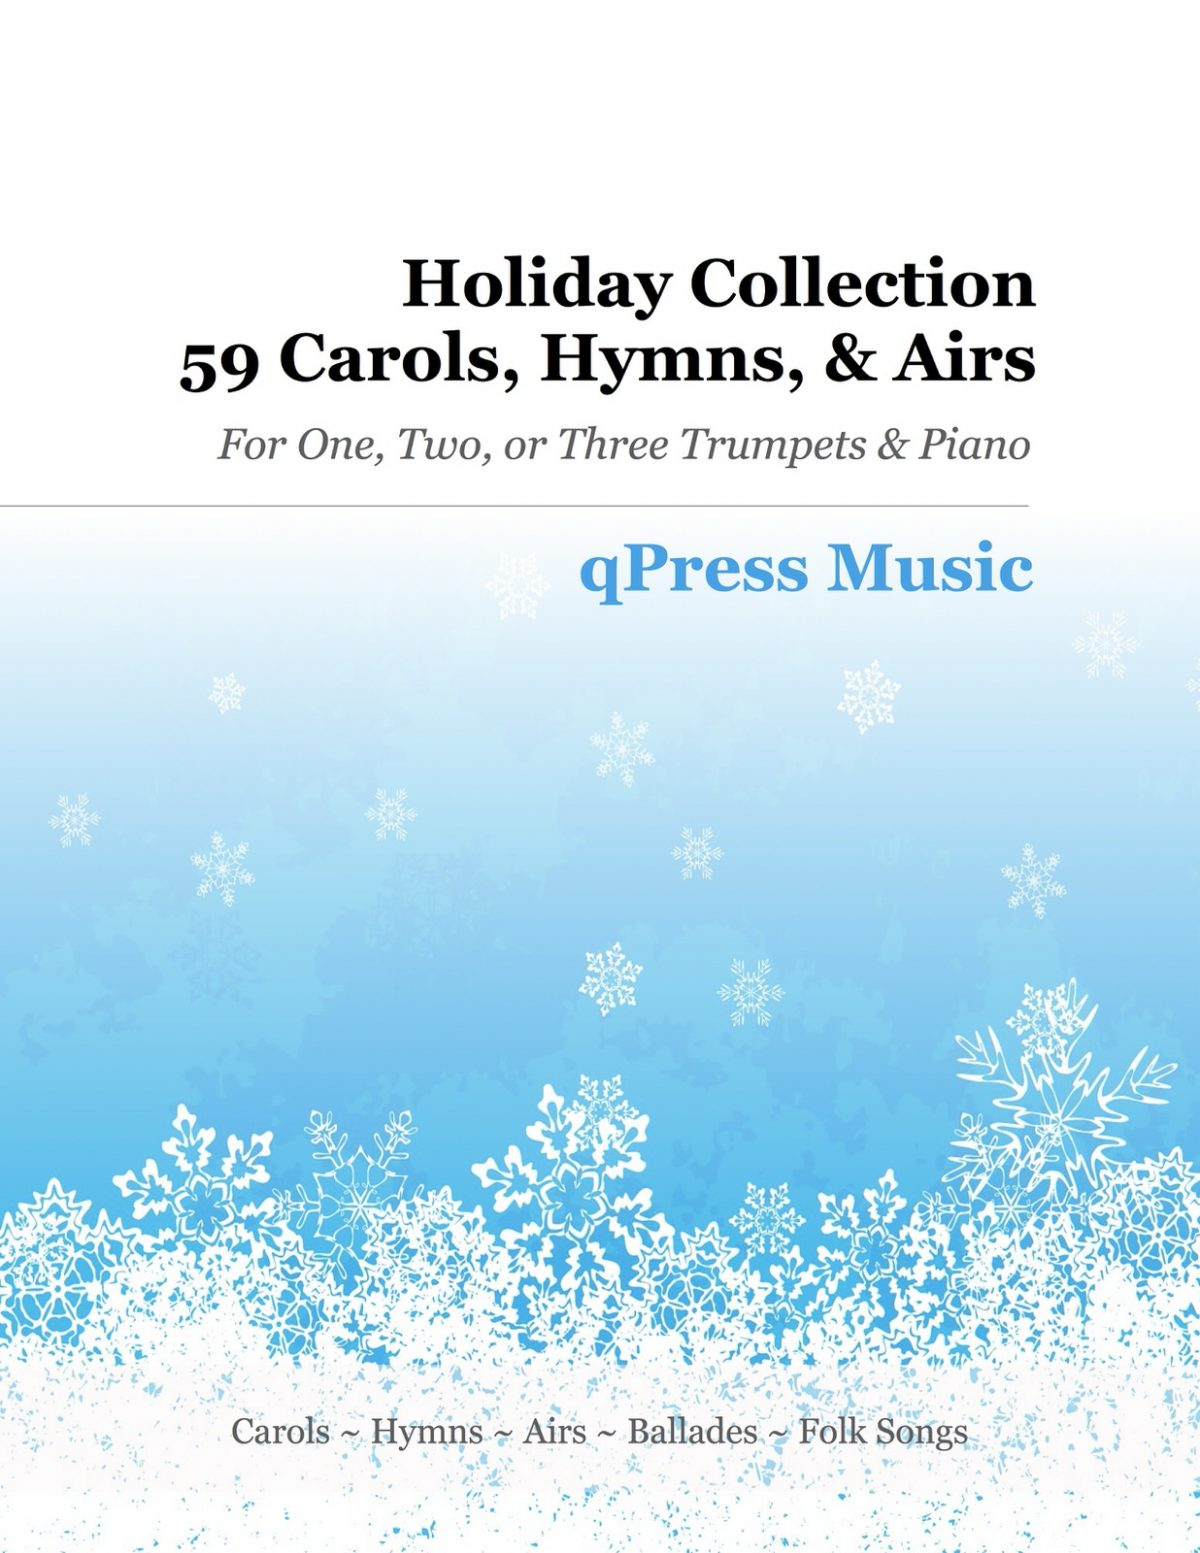 Various, Holiday Collection (59 Carols, Hymns, and Airs)-p001